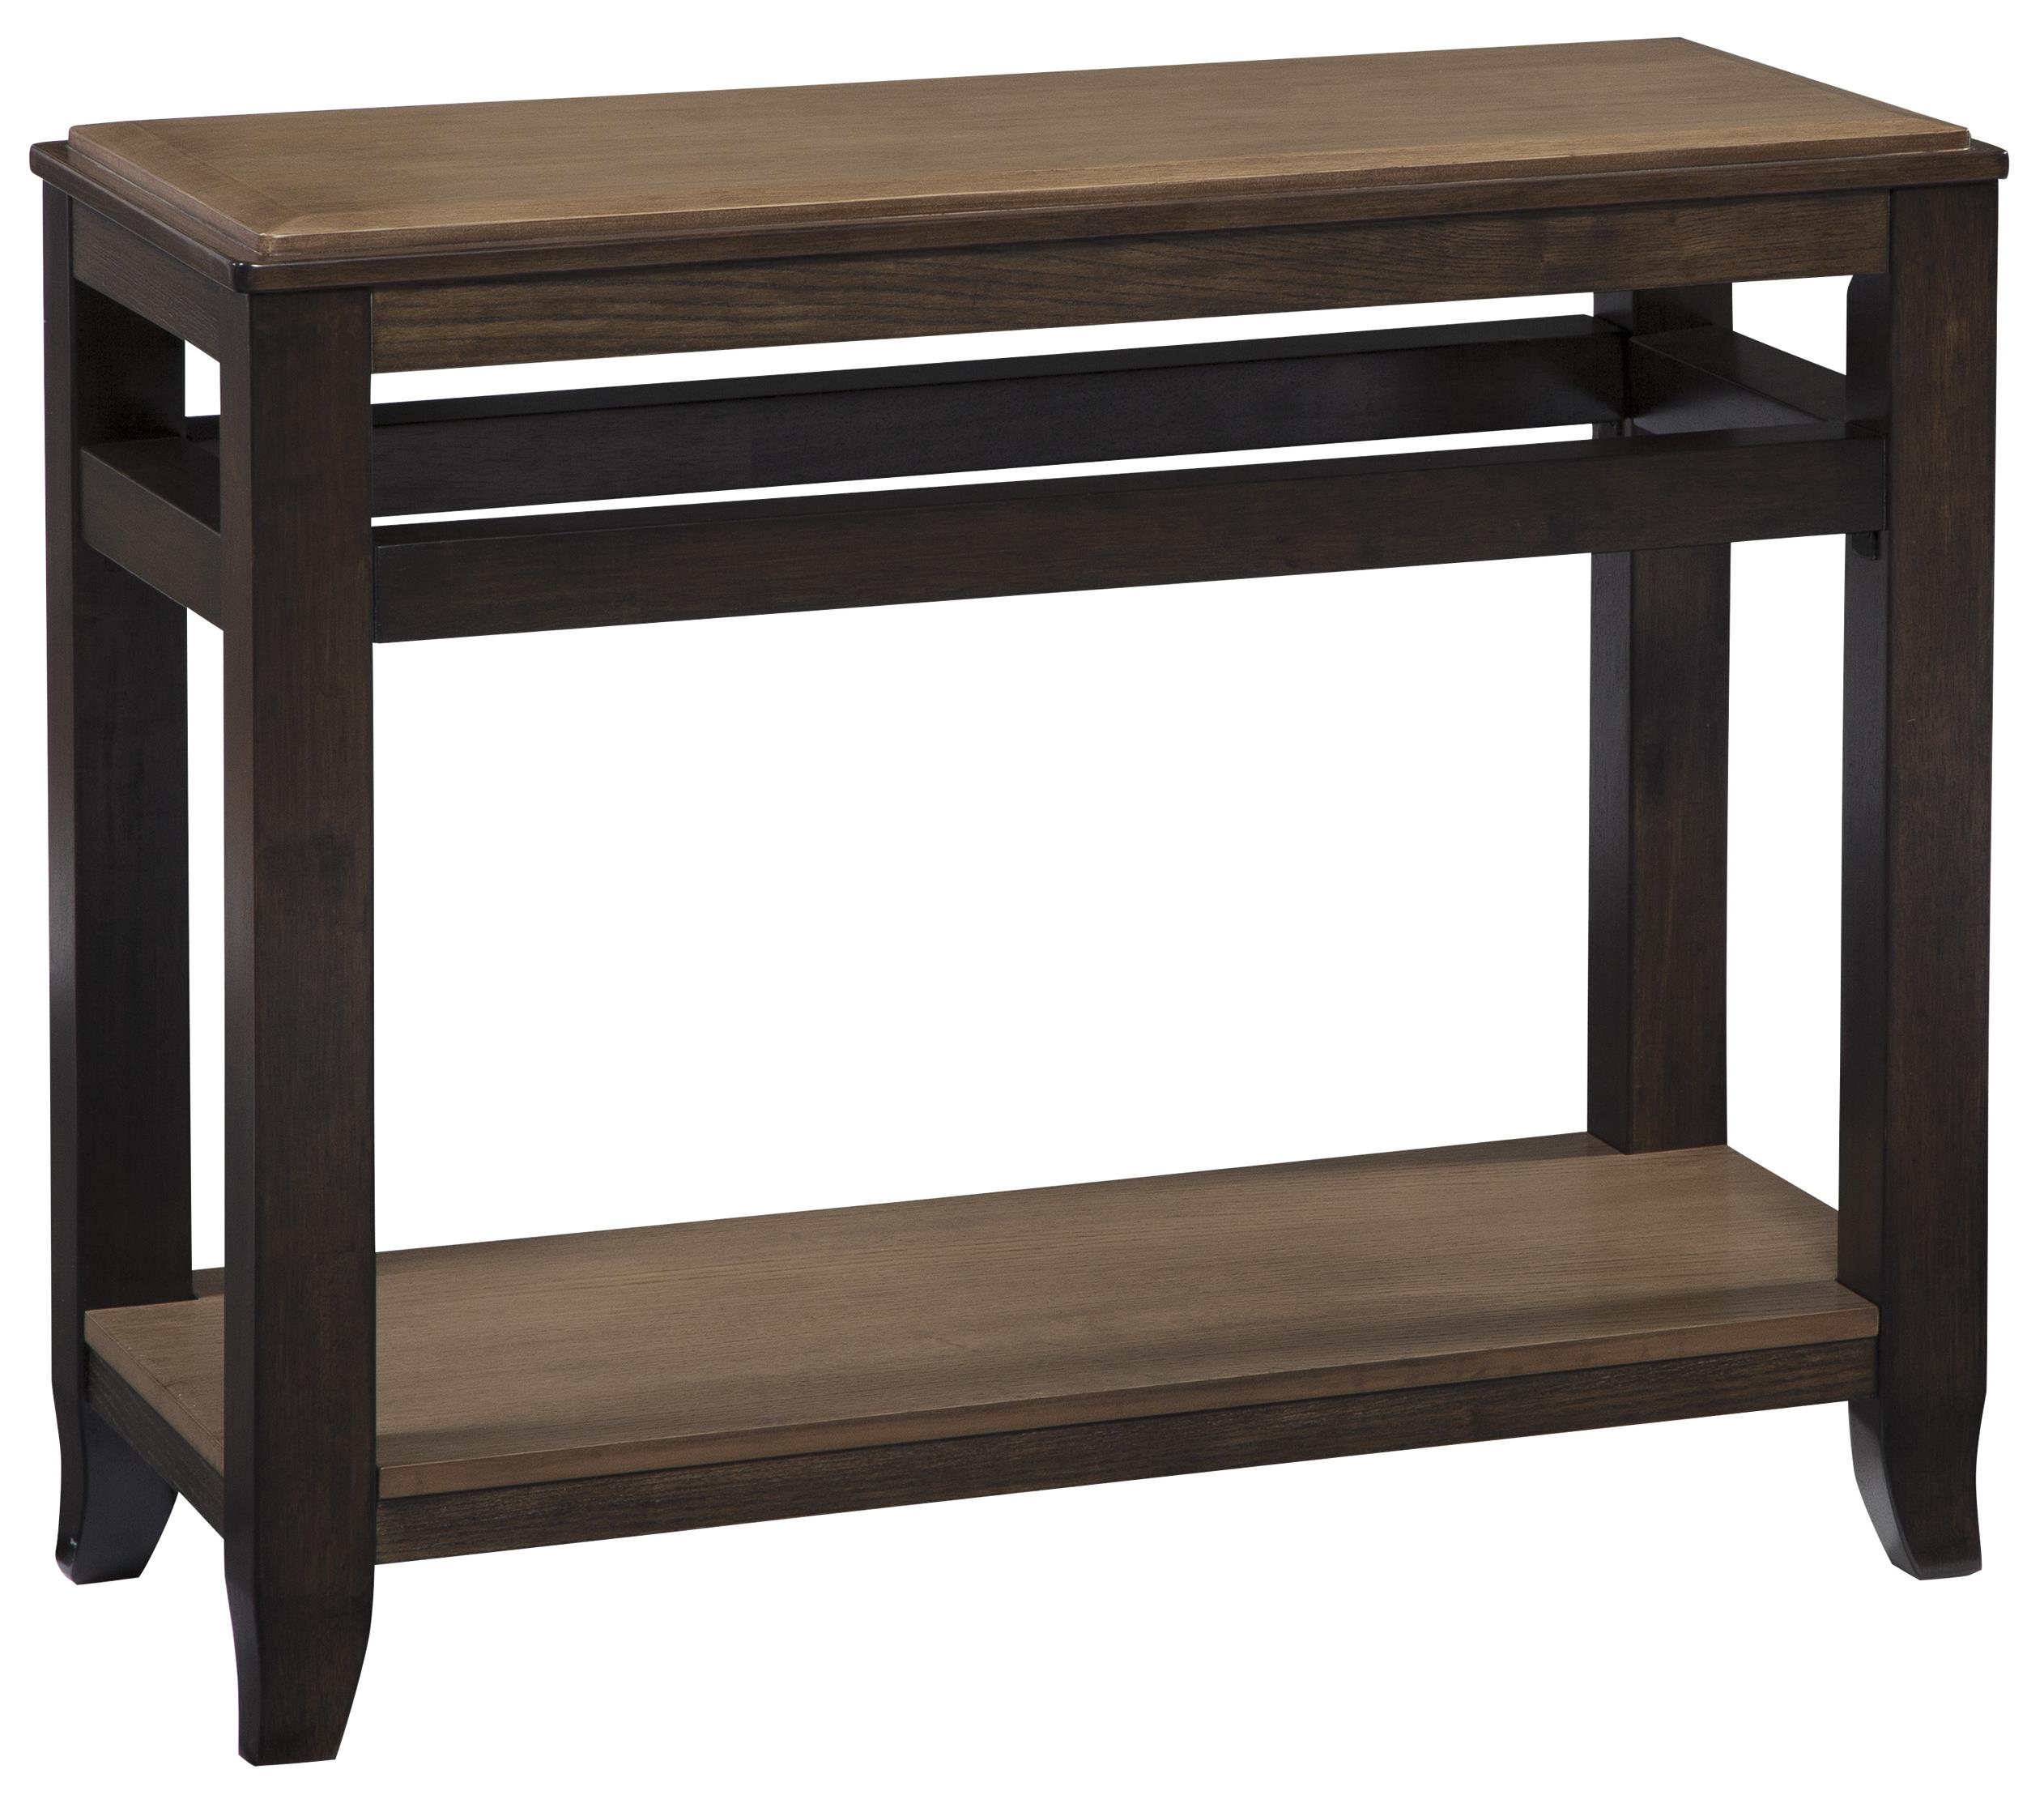 Signature Design by Ashley Mandoro Sofa Table - Item Number: T388-4